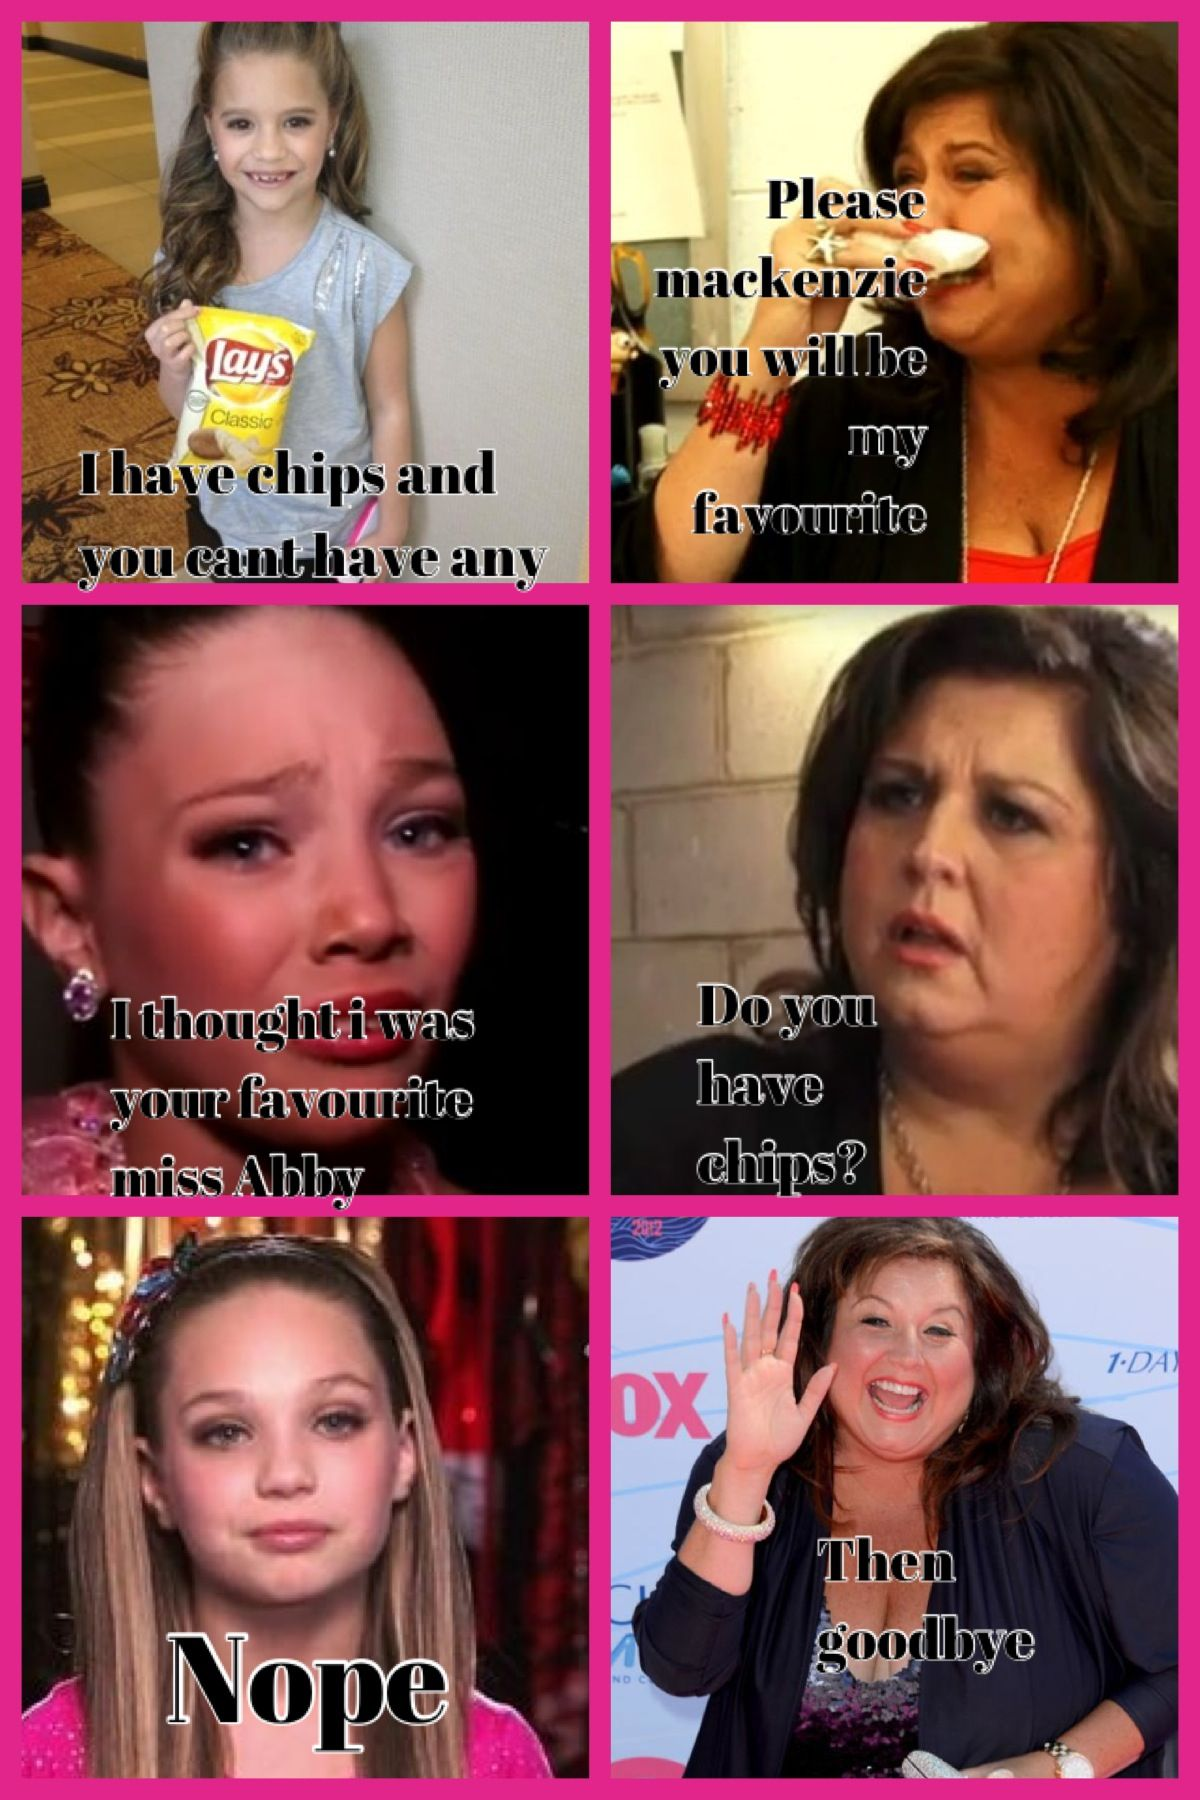 This Is The Best Thing Ive Ever Seen Lol Dance Moms Funny Dance Moms Comics Dance Moms Facts